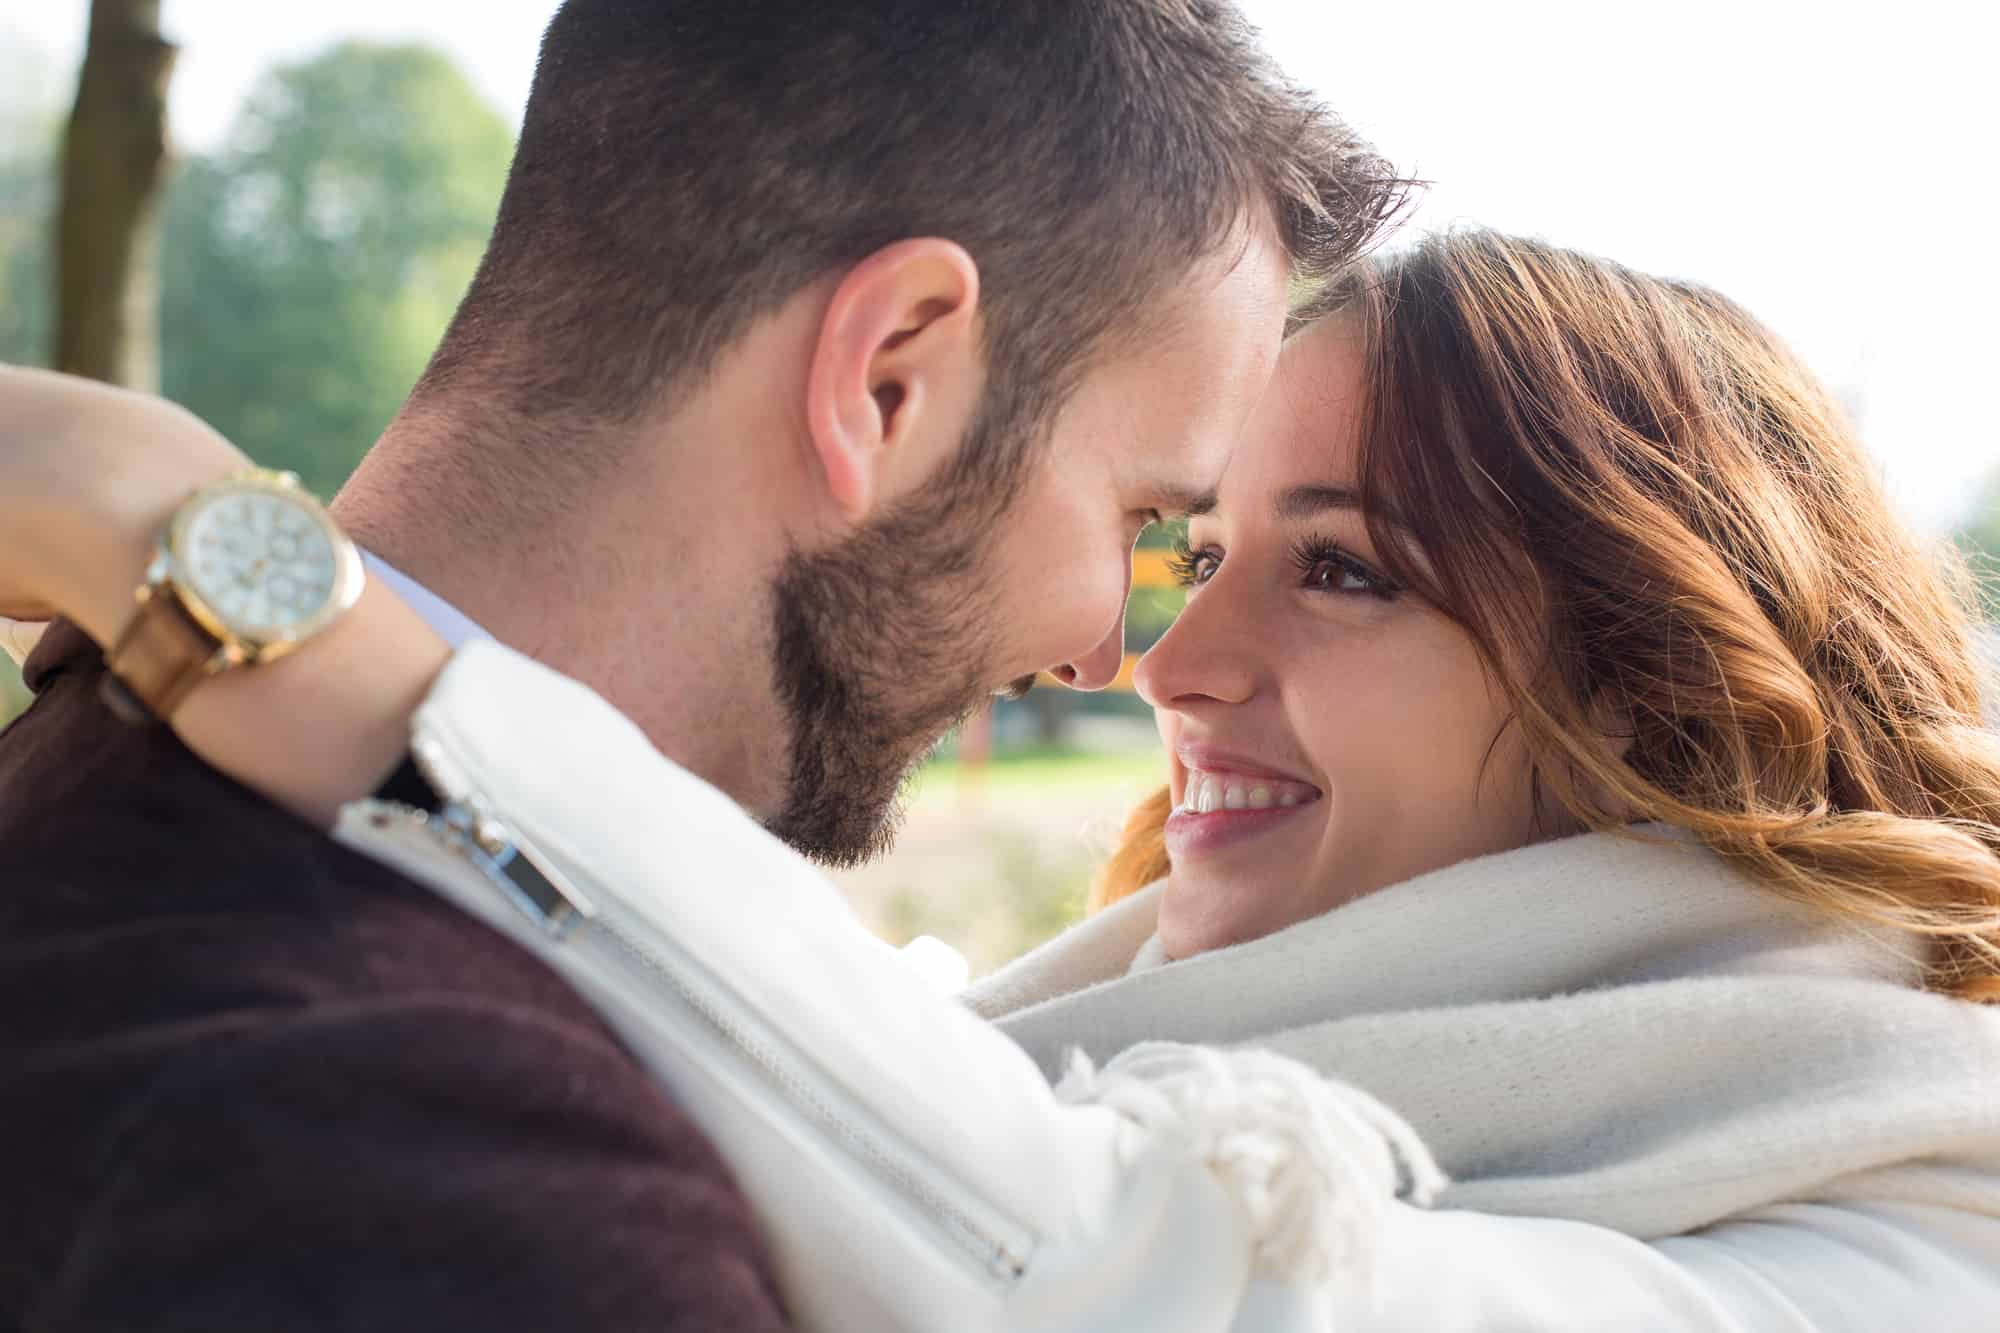 Ways To Make Him Feel Loved Without Even Saying It